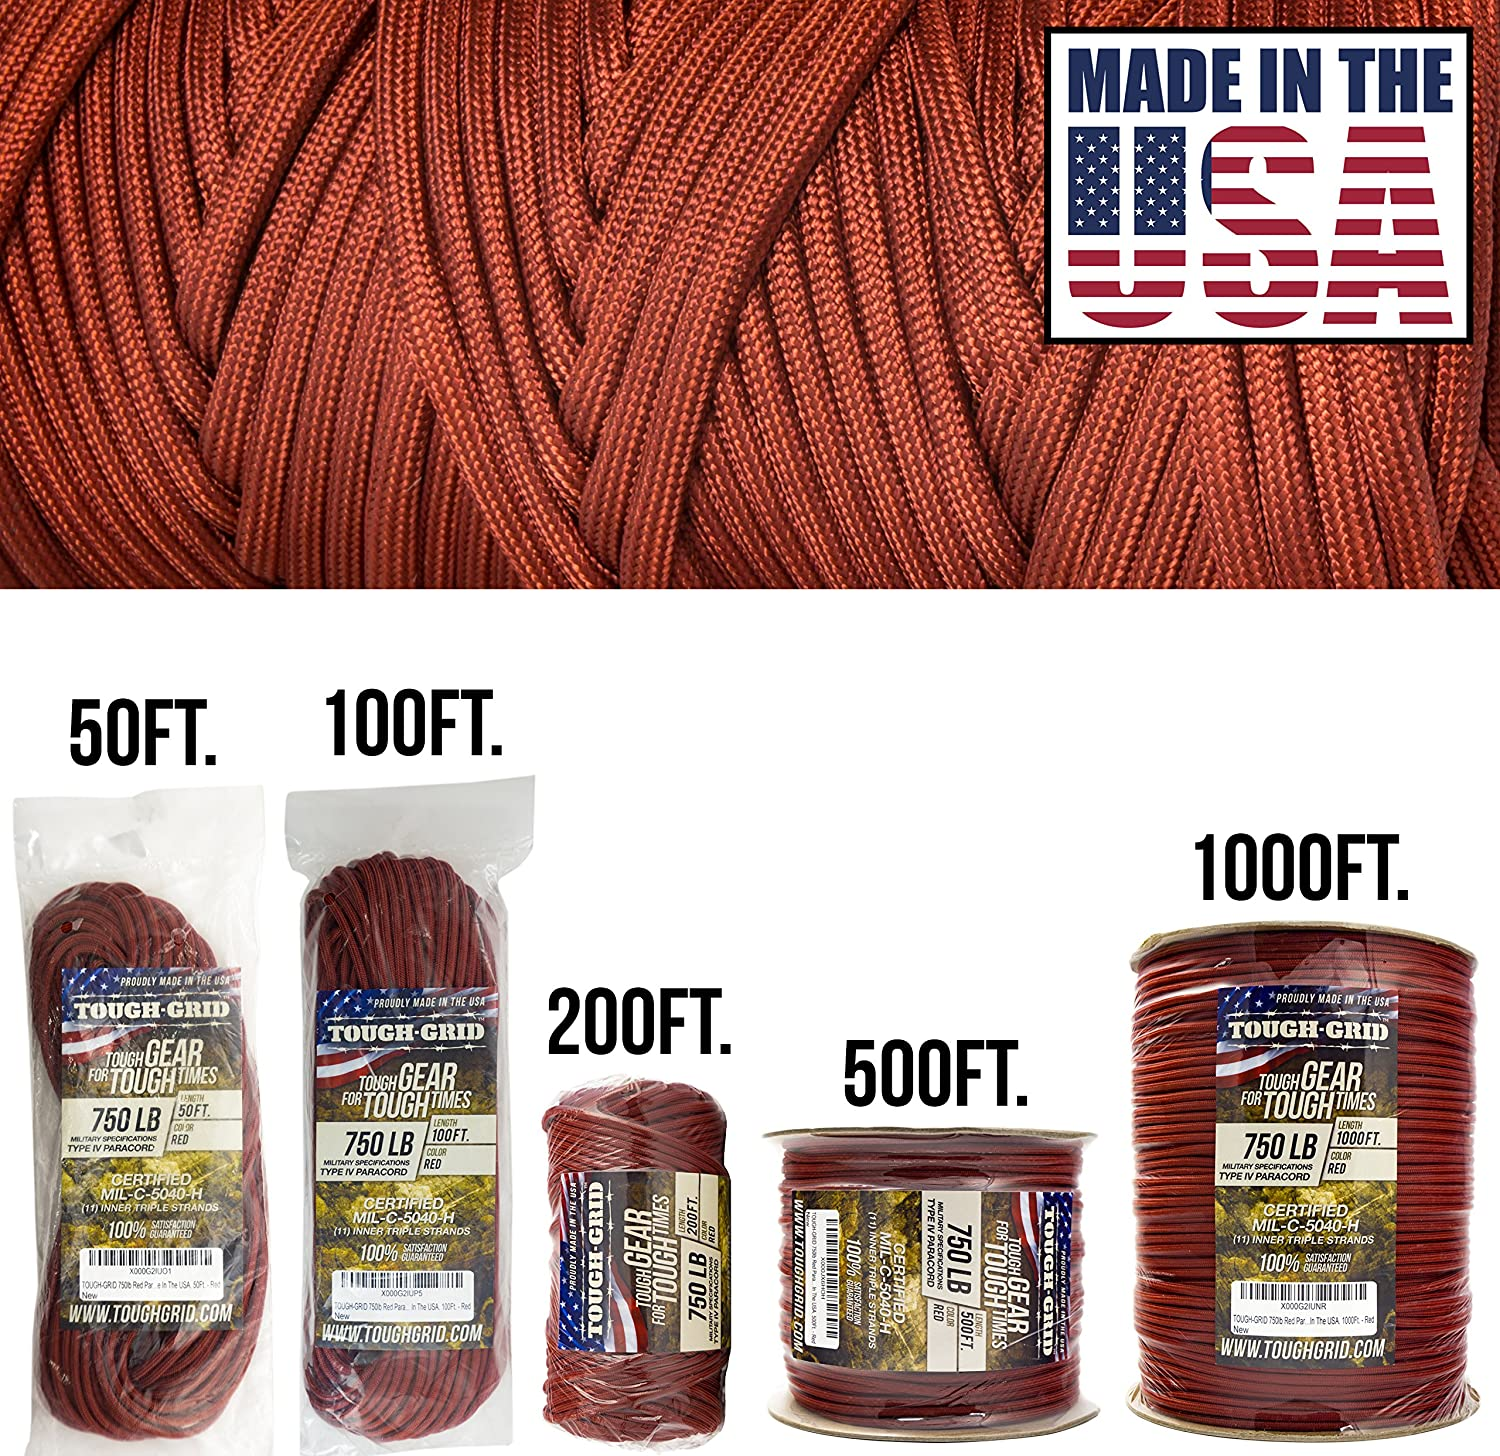 (150m (WOUND ON SPOOL), Red)  TOUGHGRID 340kg Paracord Parachute Cord  Genuine Mil Spec Type IV 340kg Paracord Used by the US Military (MIlC5040H)  100% Nylon  Made In The USA.